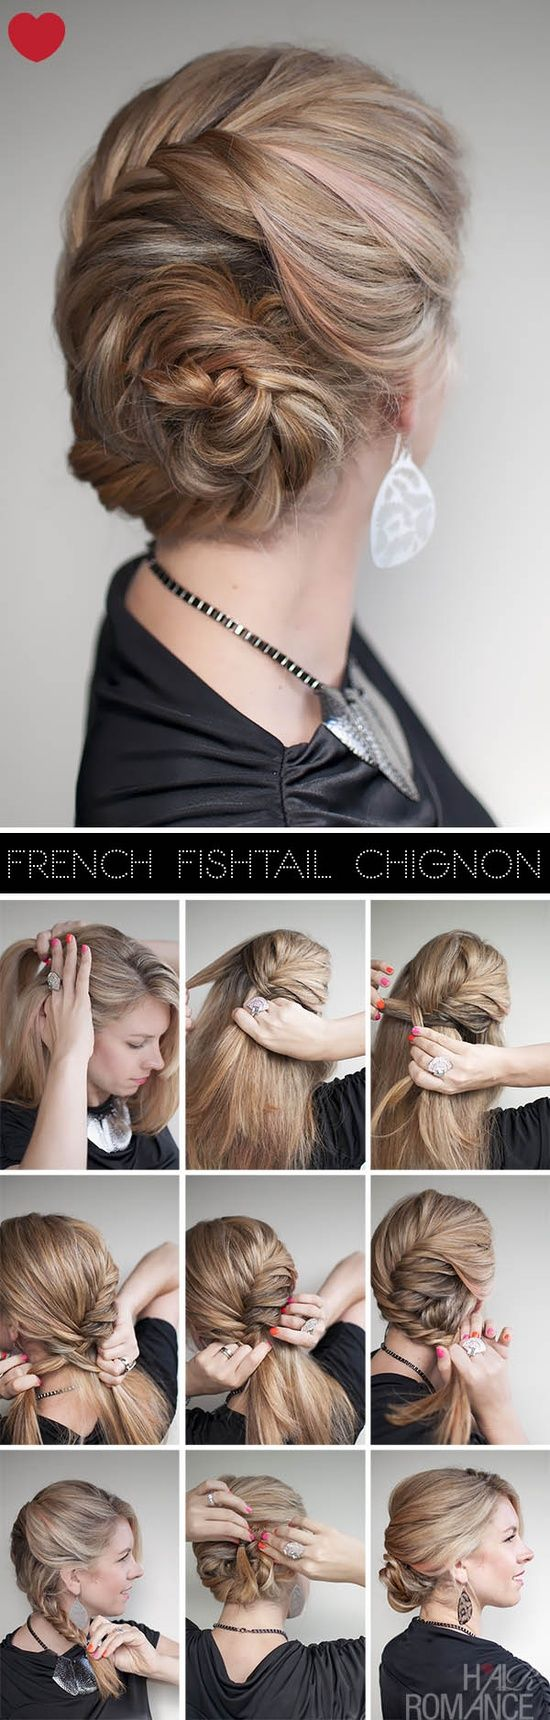 French Fishtail Chignon: a classy up-do for Nursing Students to use for clincals!